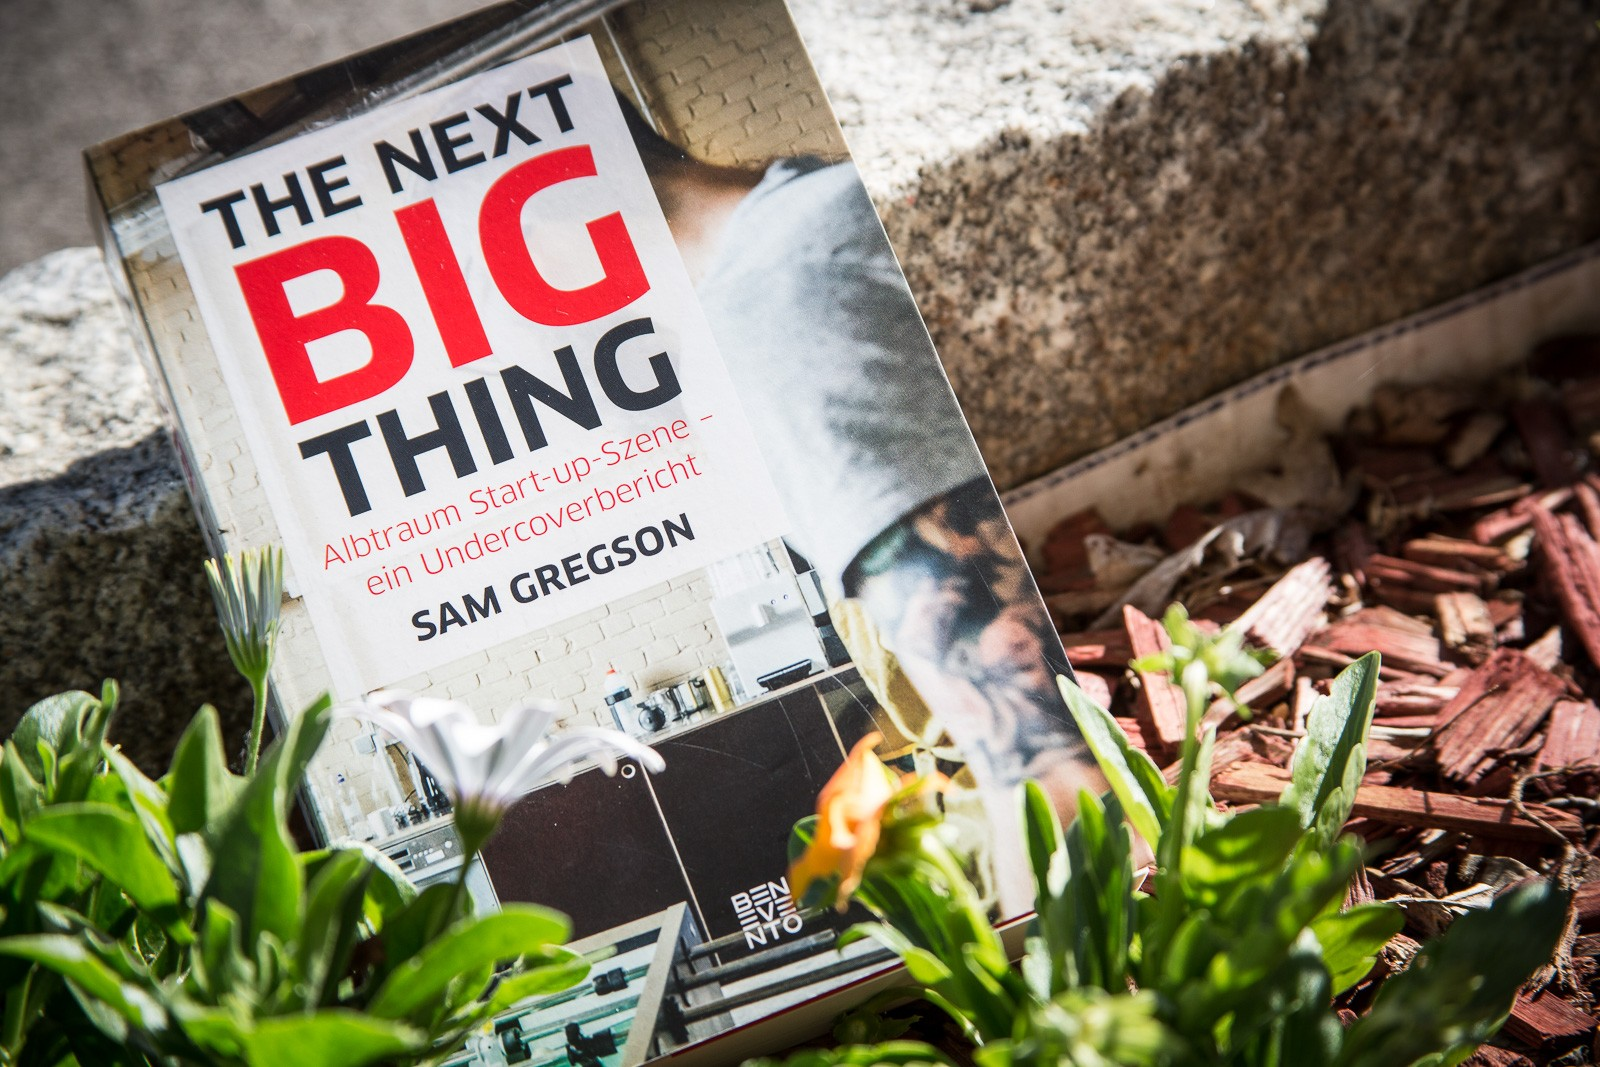 The next big thing - Start-up - Sam Gregson